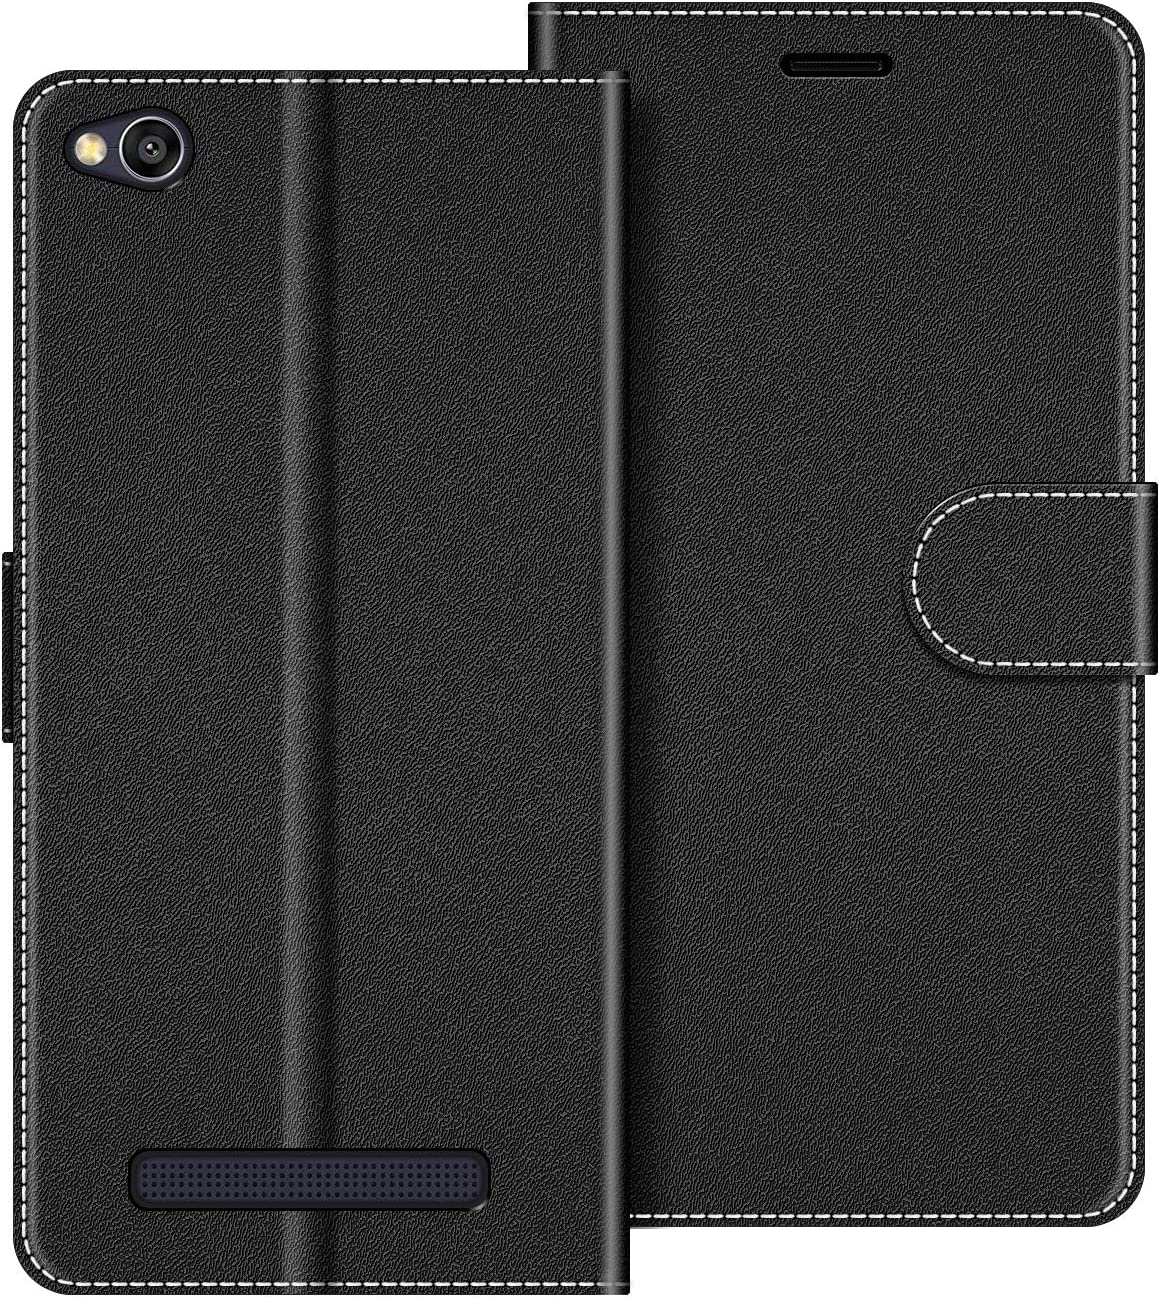 COODIO Funda Xiaomi Redmi 4A con Tapa, Funda Movil Xiaomi Redmi 4A ...